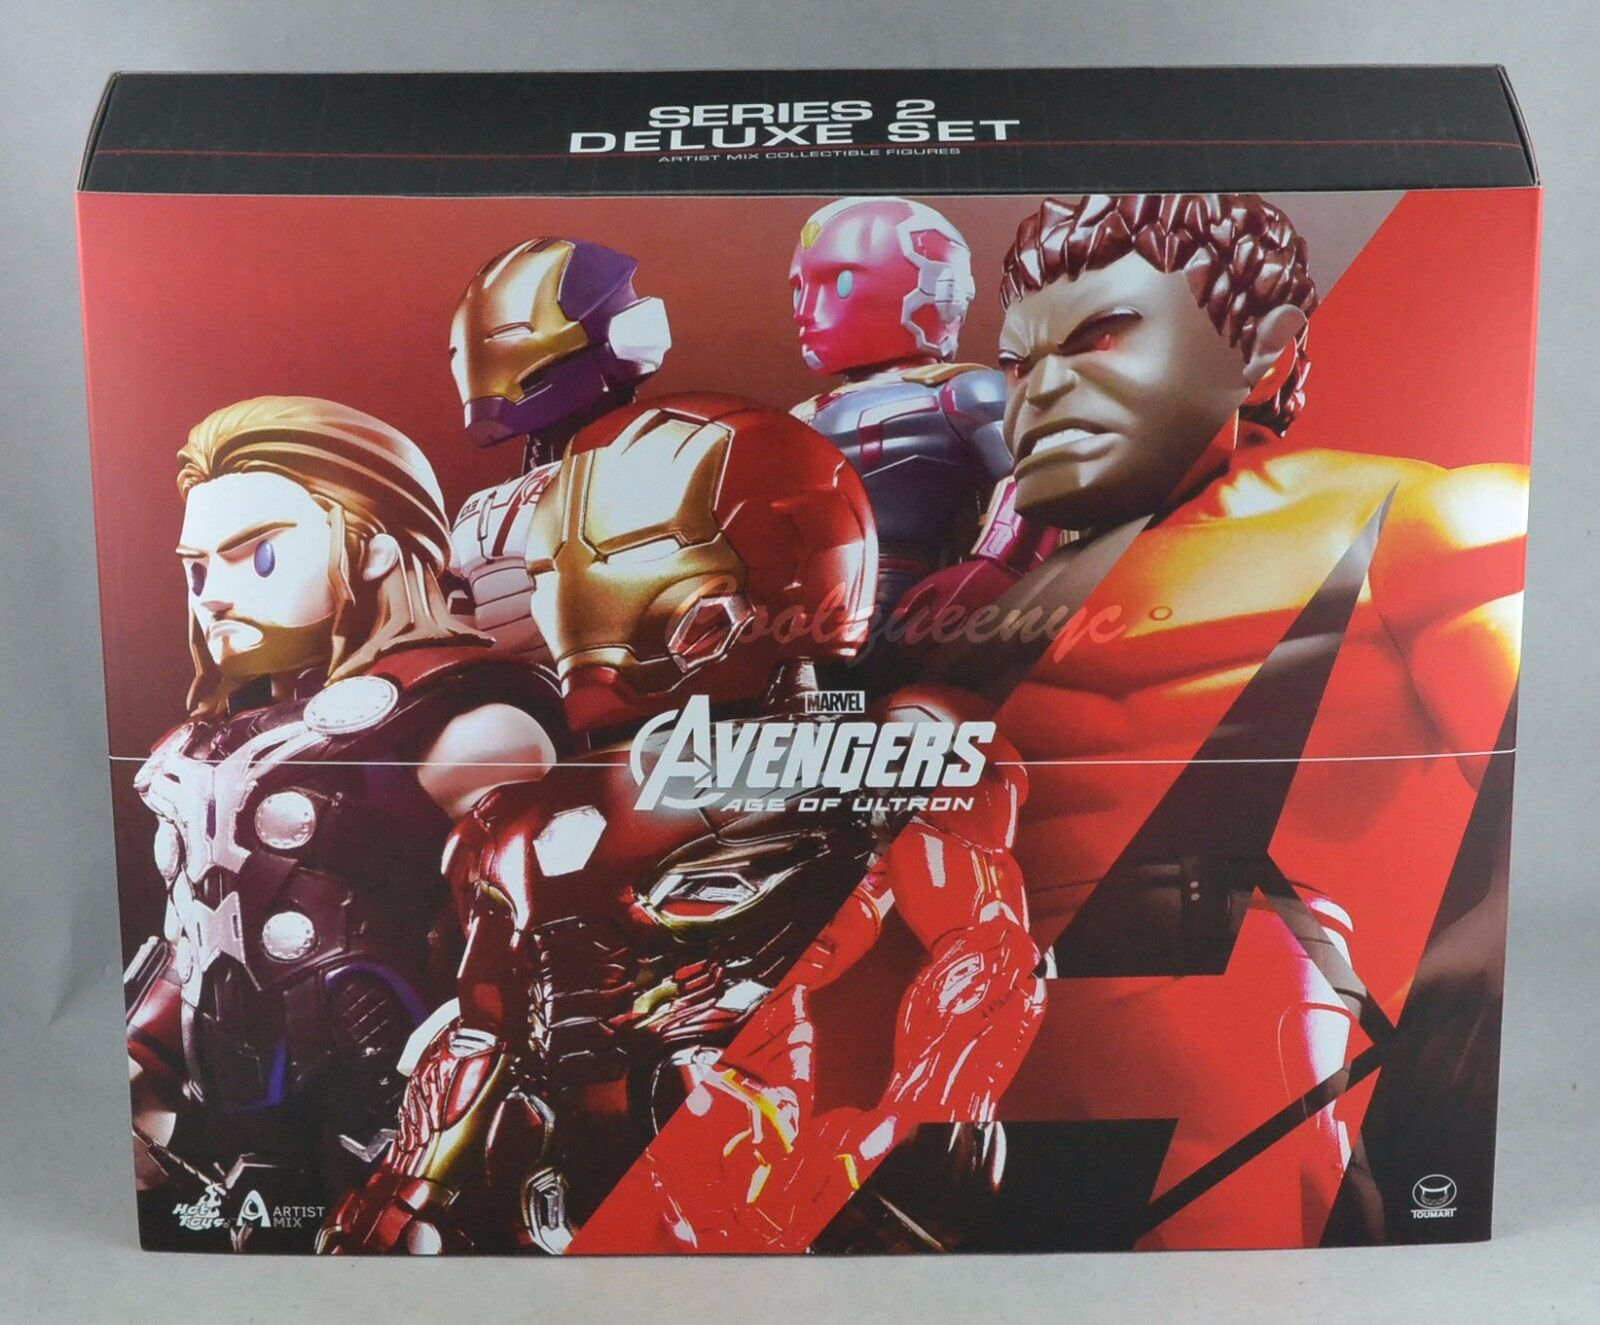 Hot Toys Artist Mix Avengers Age of Ultron Figures Series 2 Designed by Touma